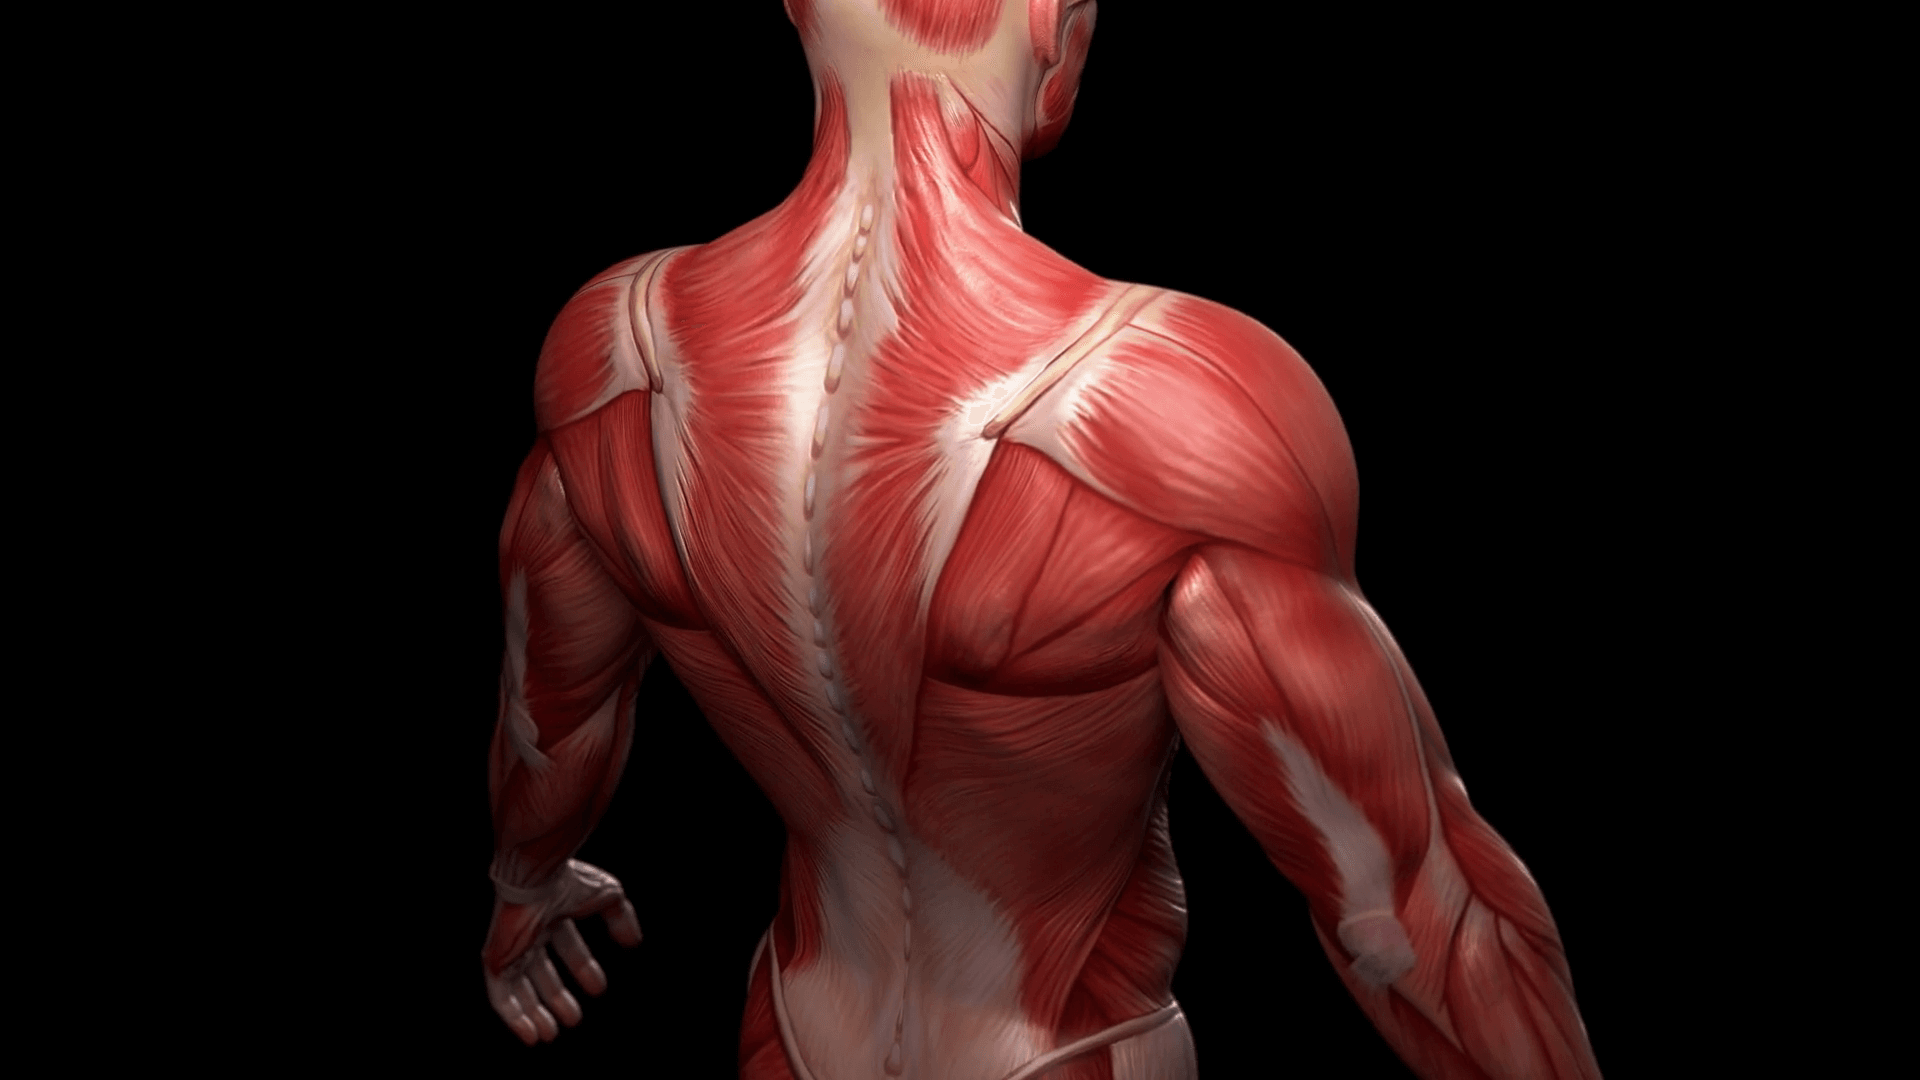 Human muscles from stem cells: Advance could aid research ...